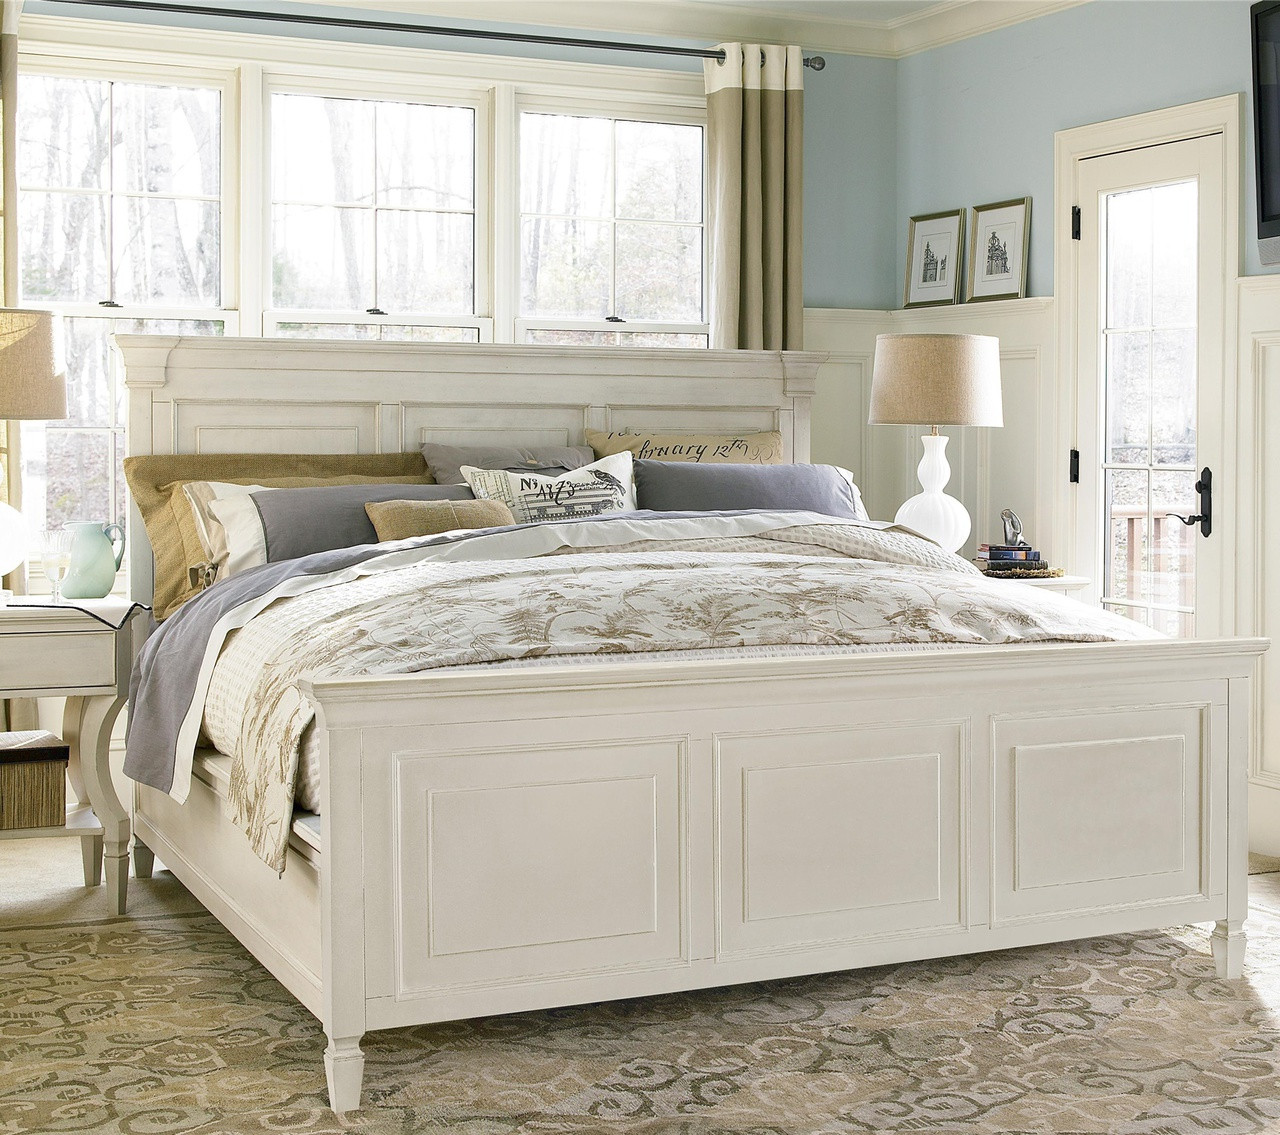 Universal Bedroom Furniture Reviews